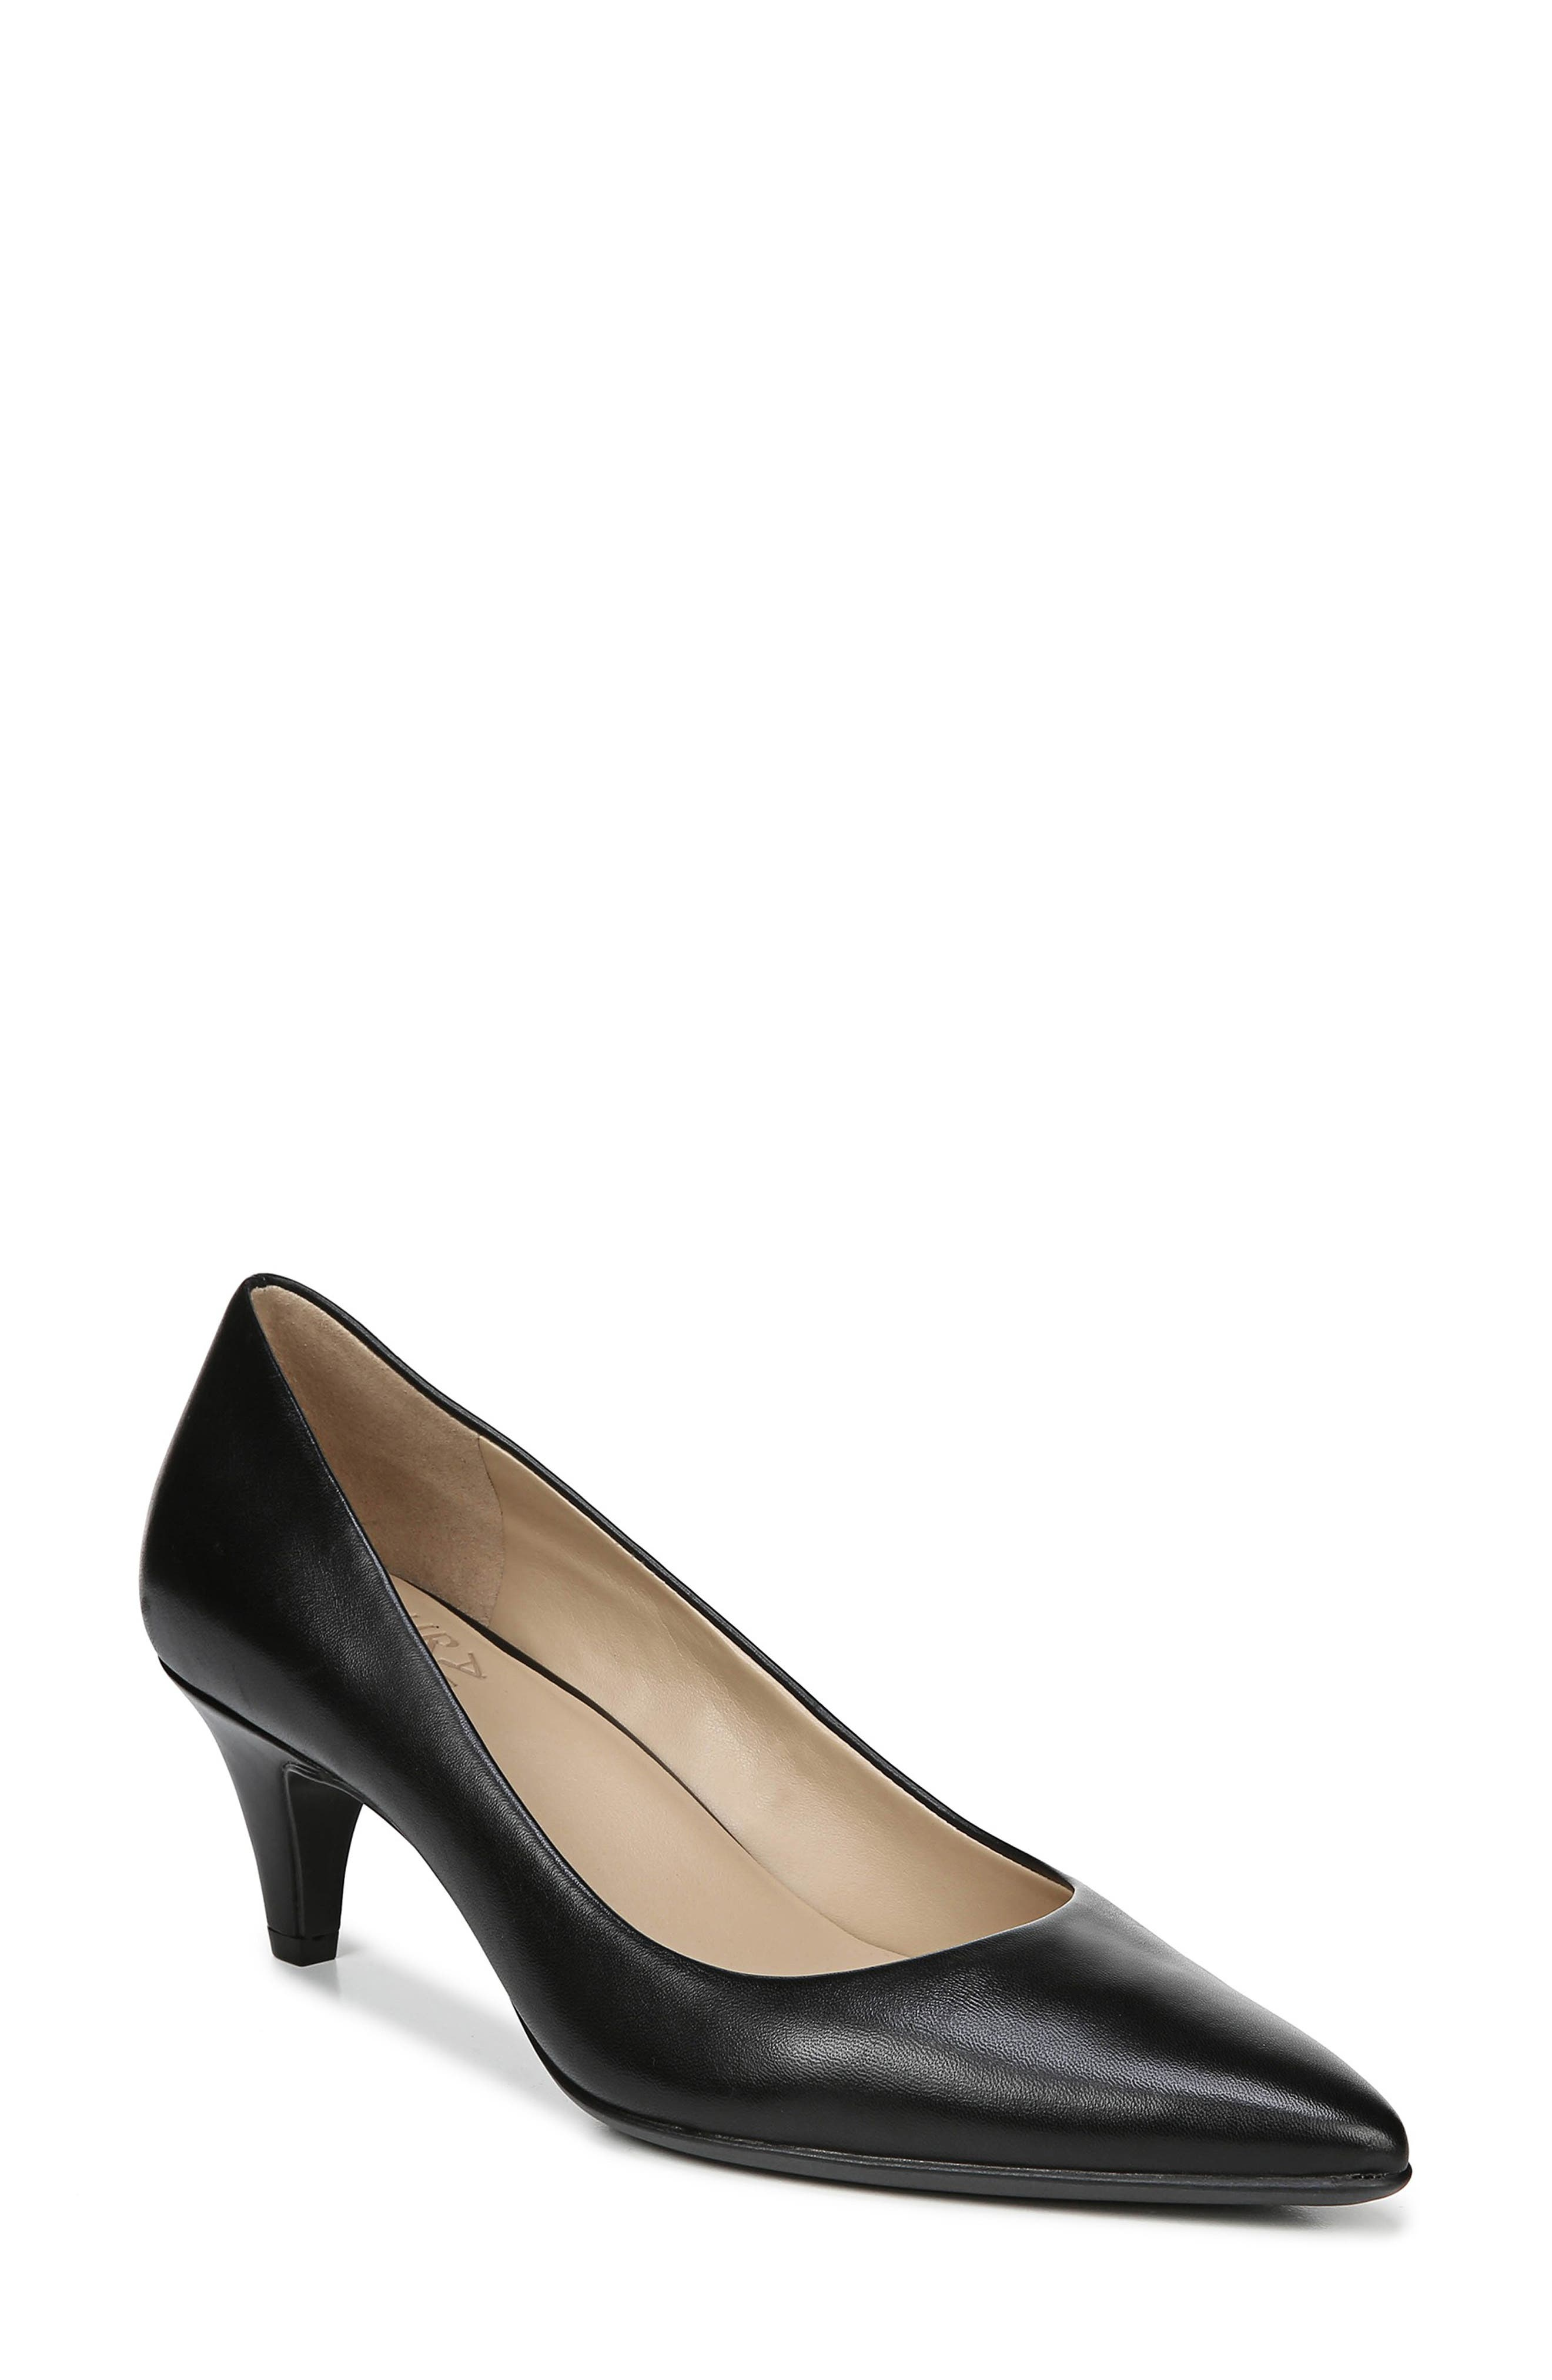 NATURALIZER, Beverly Pump, Main thumbnail 1, color, BLACK LEATHER